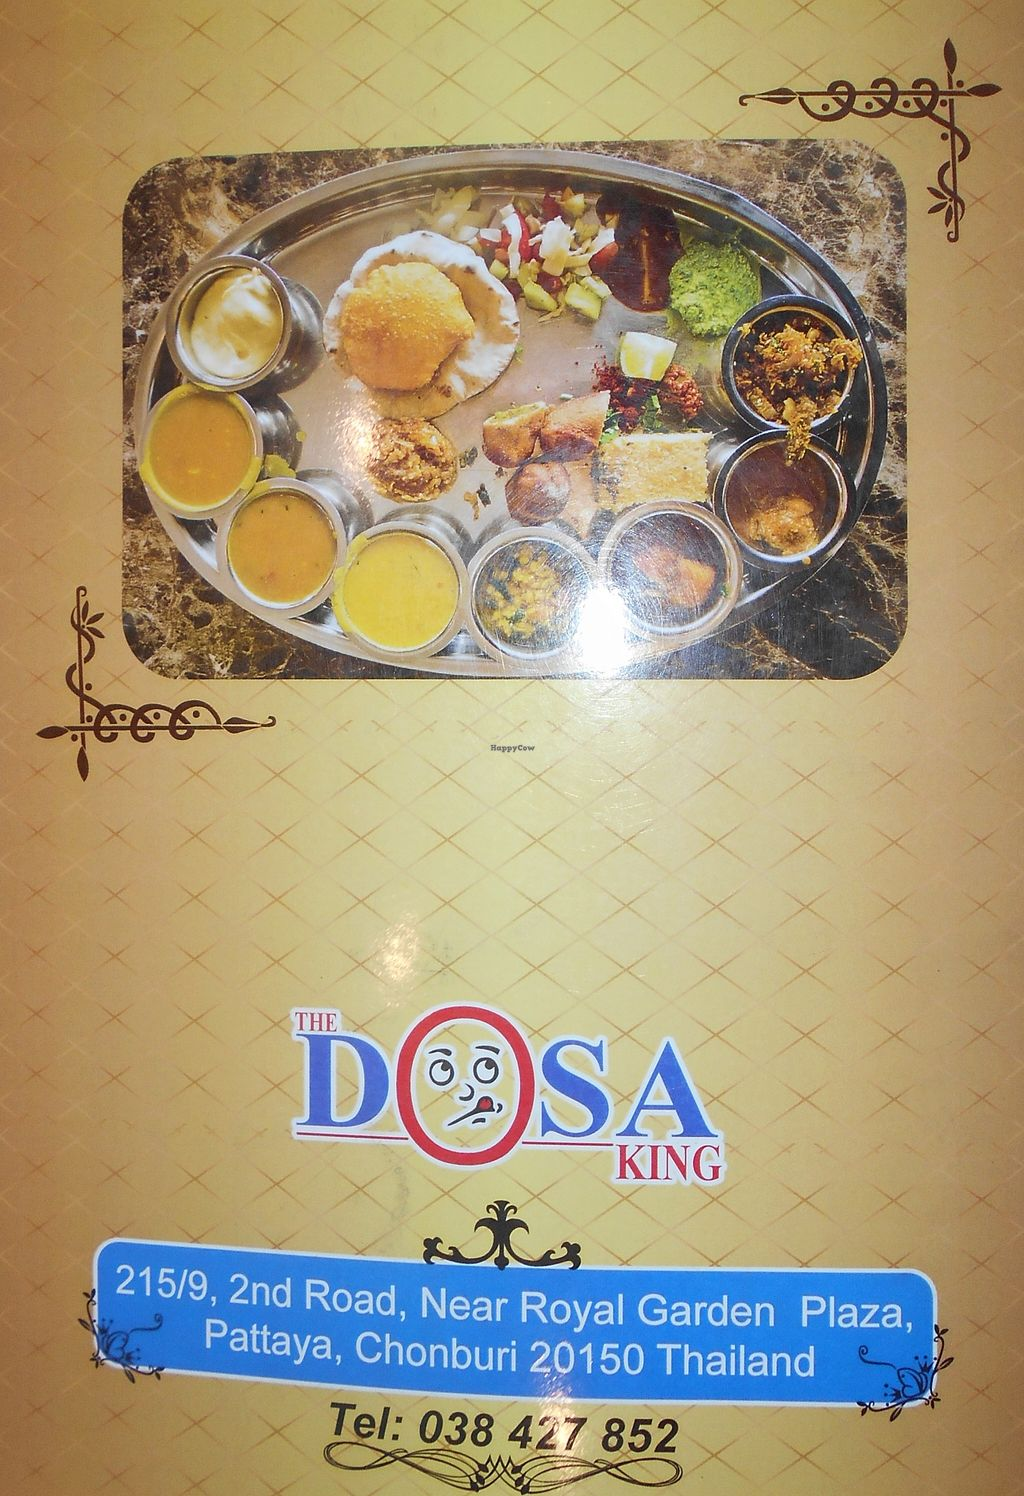 """Photo of The Dosa Hut  by <a href=""""/members/profile/Kelly%20Kelly"""">Kelly Kelly</a> <br/>The Dosa Hut 10 <br/> April 22, 2016  - <a href='/contact/abuse/image/64732/145737'>Report</a>"""